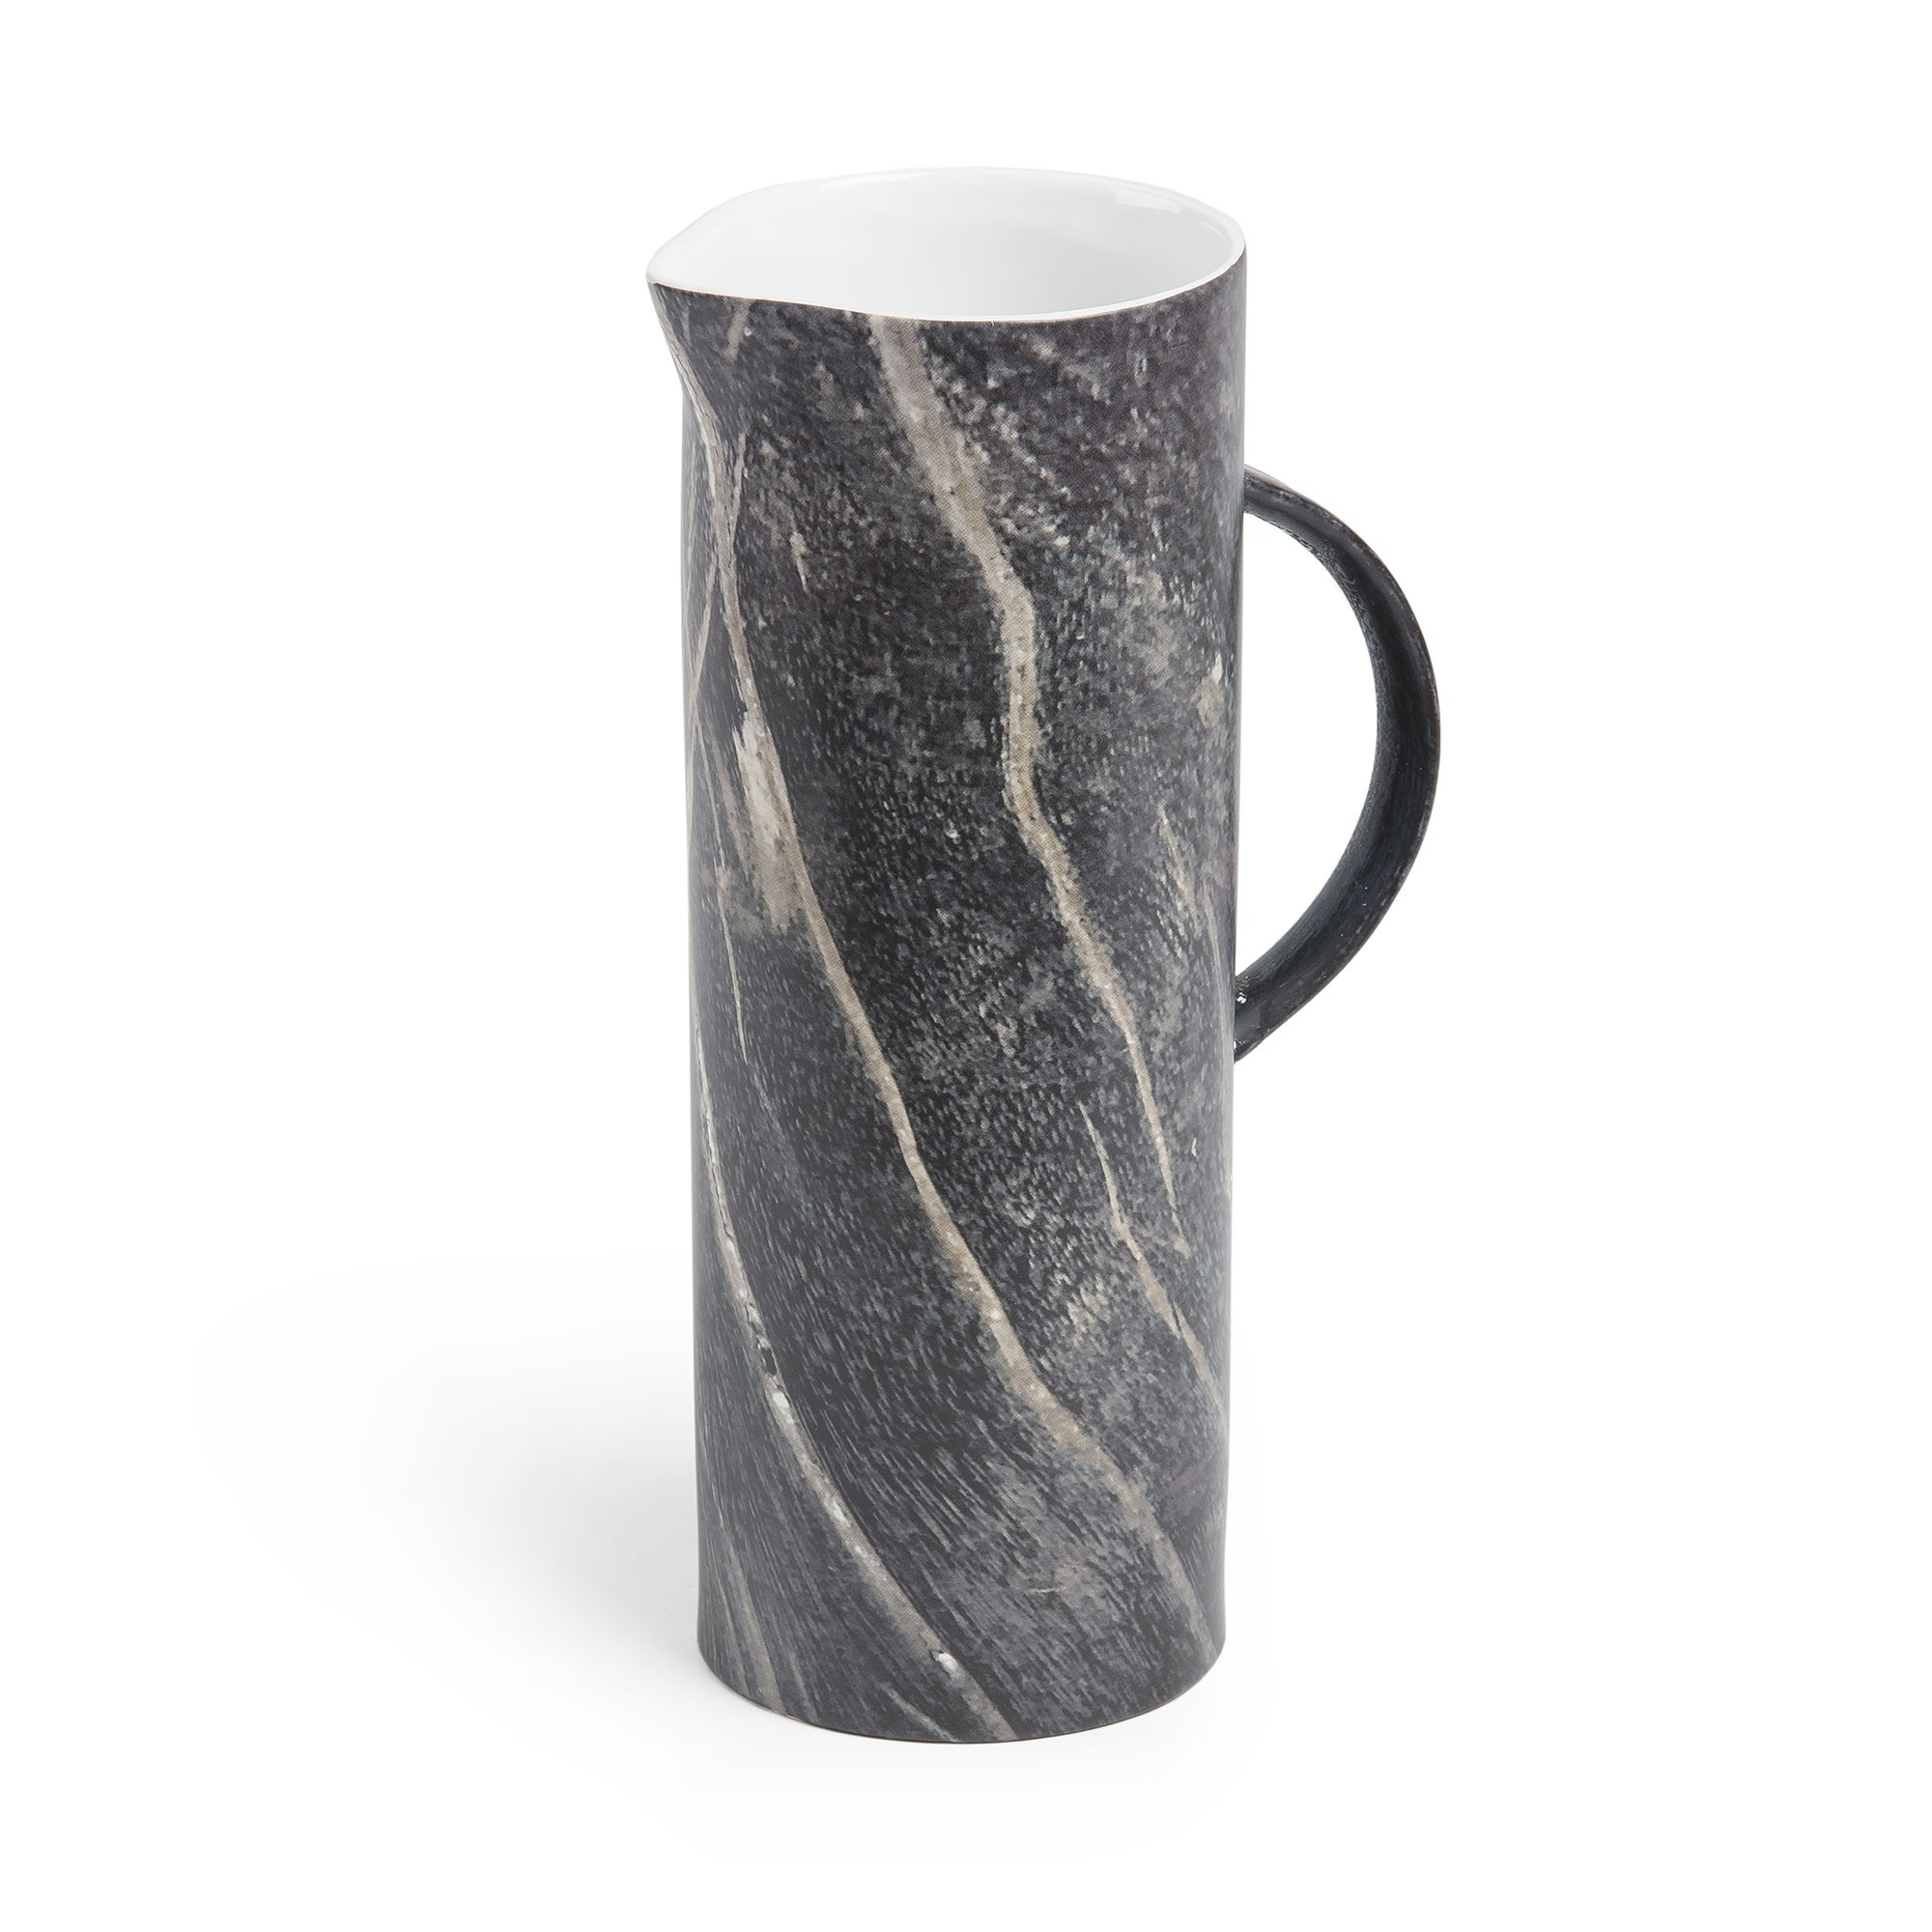 Maloney Ceramic Pitcher Vase, Dark Marble